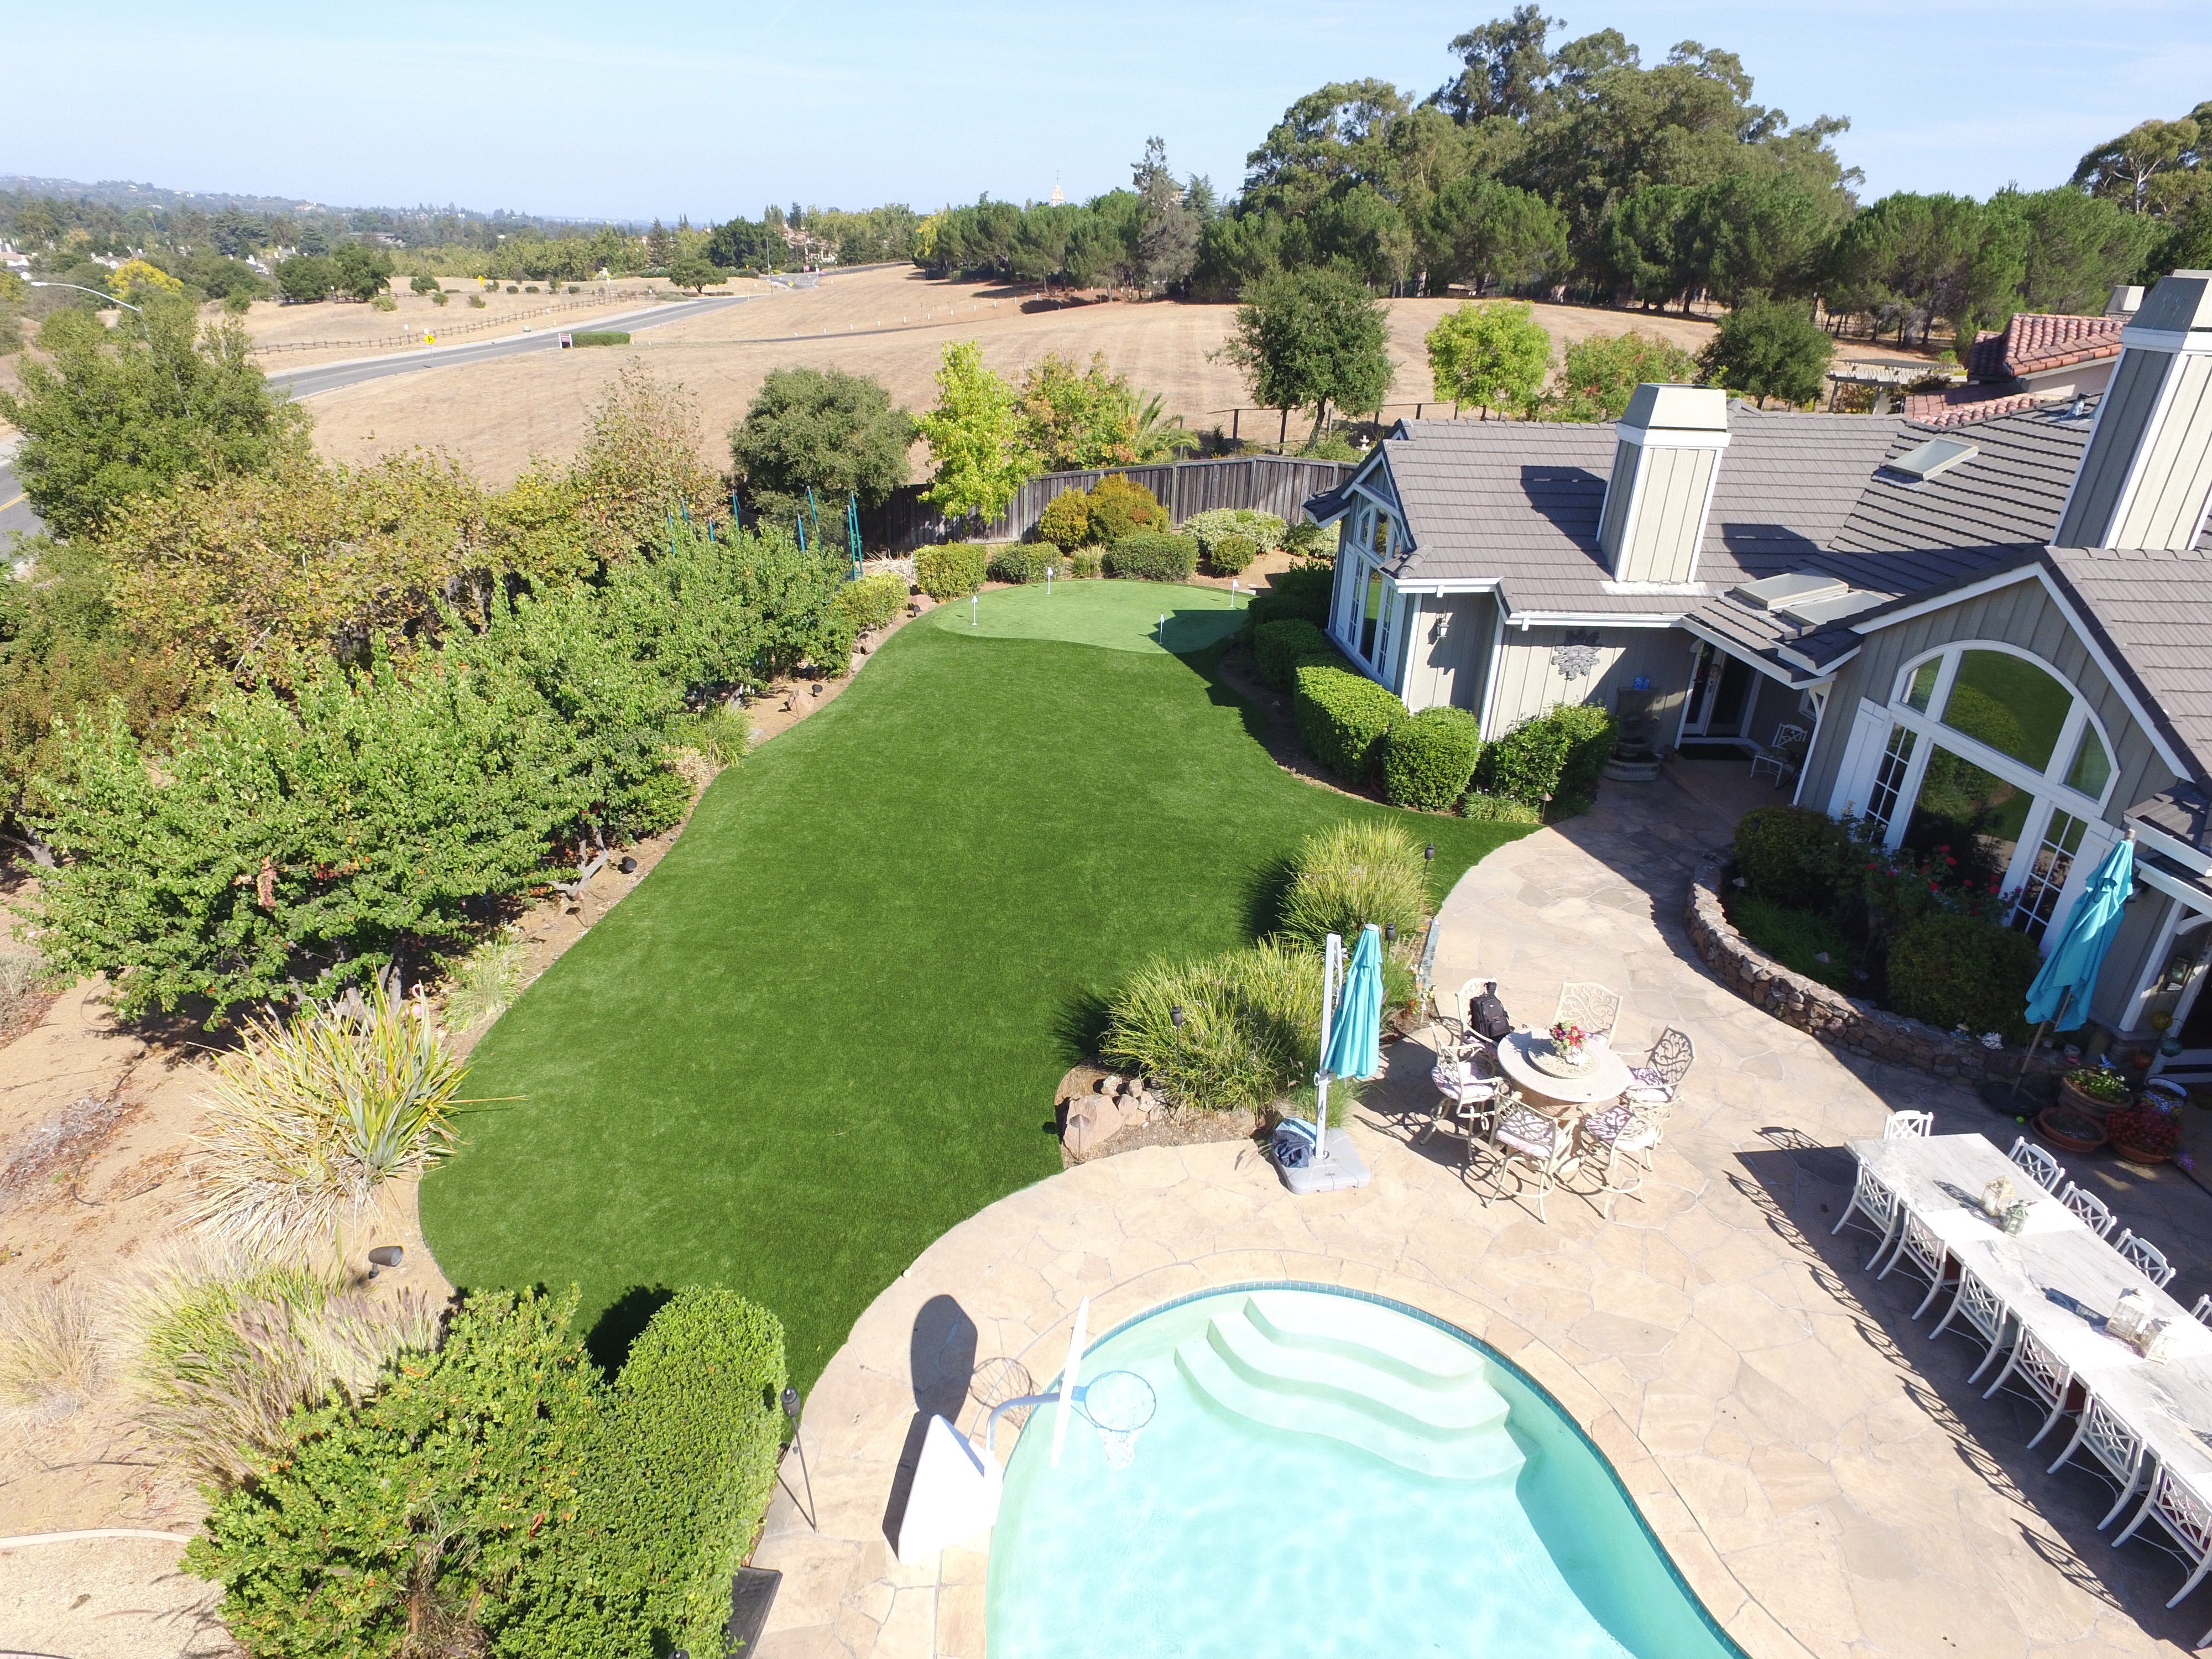 artificial grass near pool and putting area in Cupertino, California